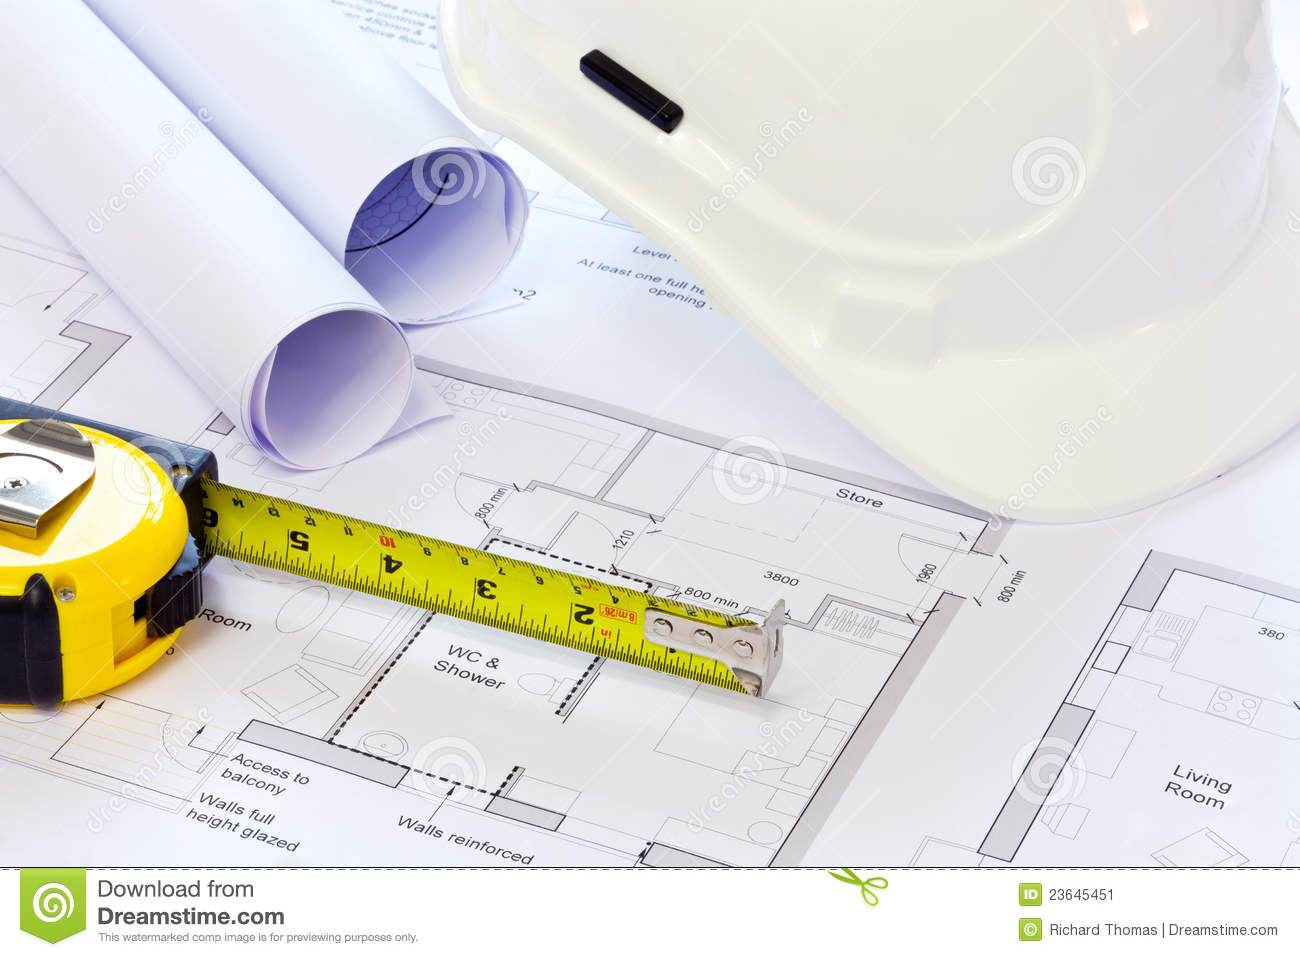 How To Read Floor Plans Measurements Hard Hat And Building Plans Stock Image Image 23645451